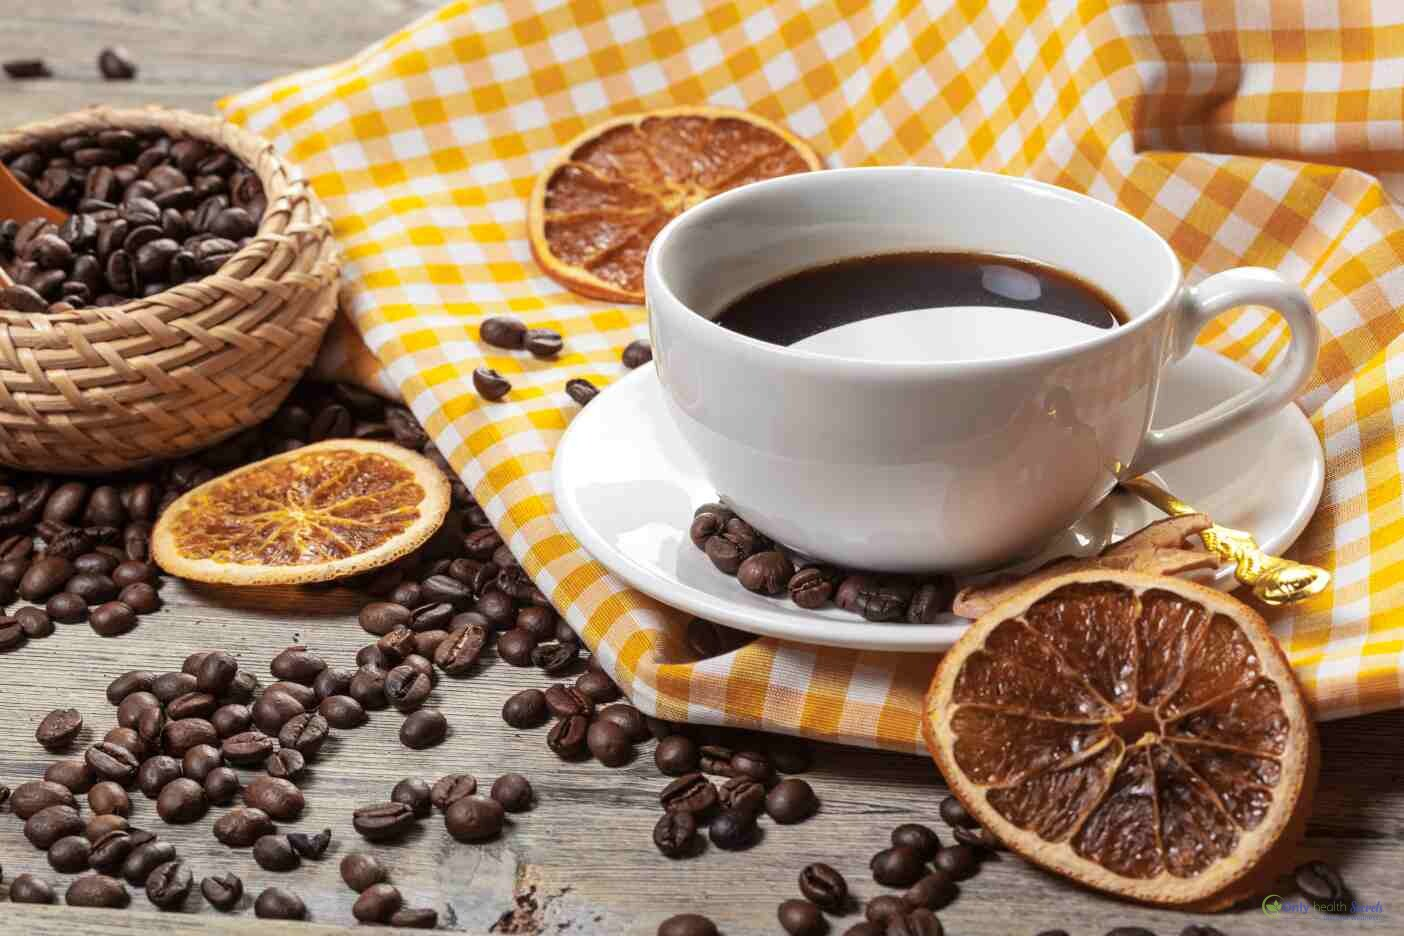 cup-of-coffee-and-coffee-beans-on-table-95RRYXJ_compress84